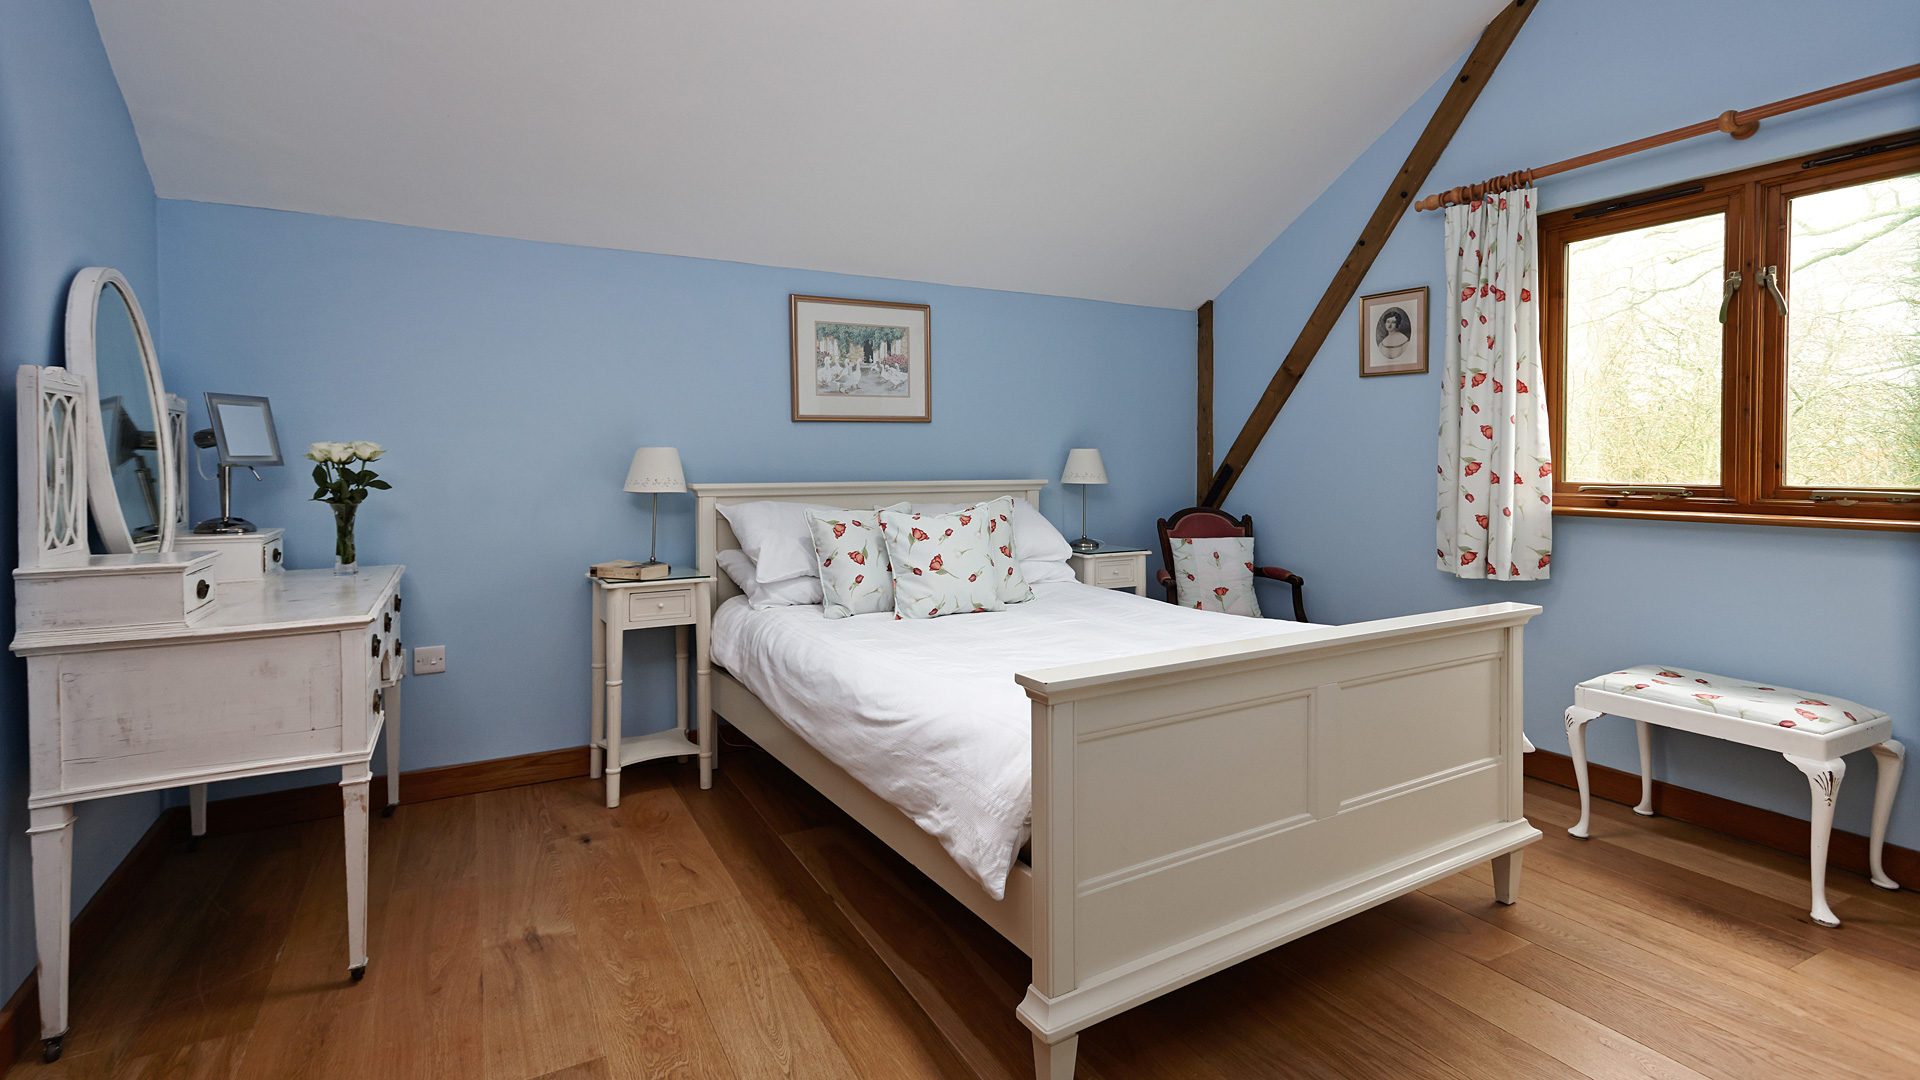 Bed And Breakfast Bishops Stortford Anstey Grove Barn A Relaxing Stay In Beautiful